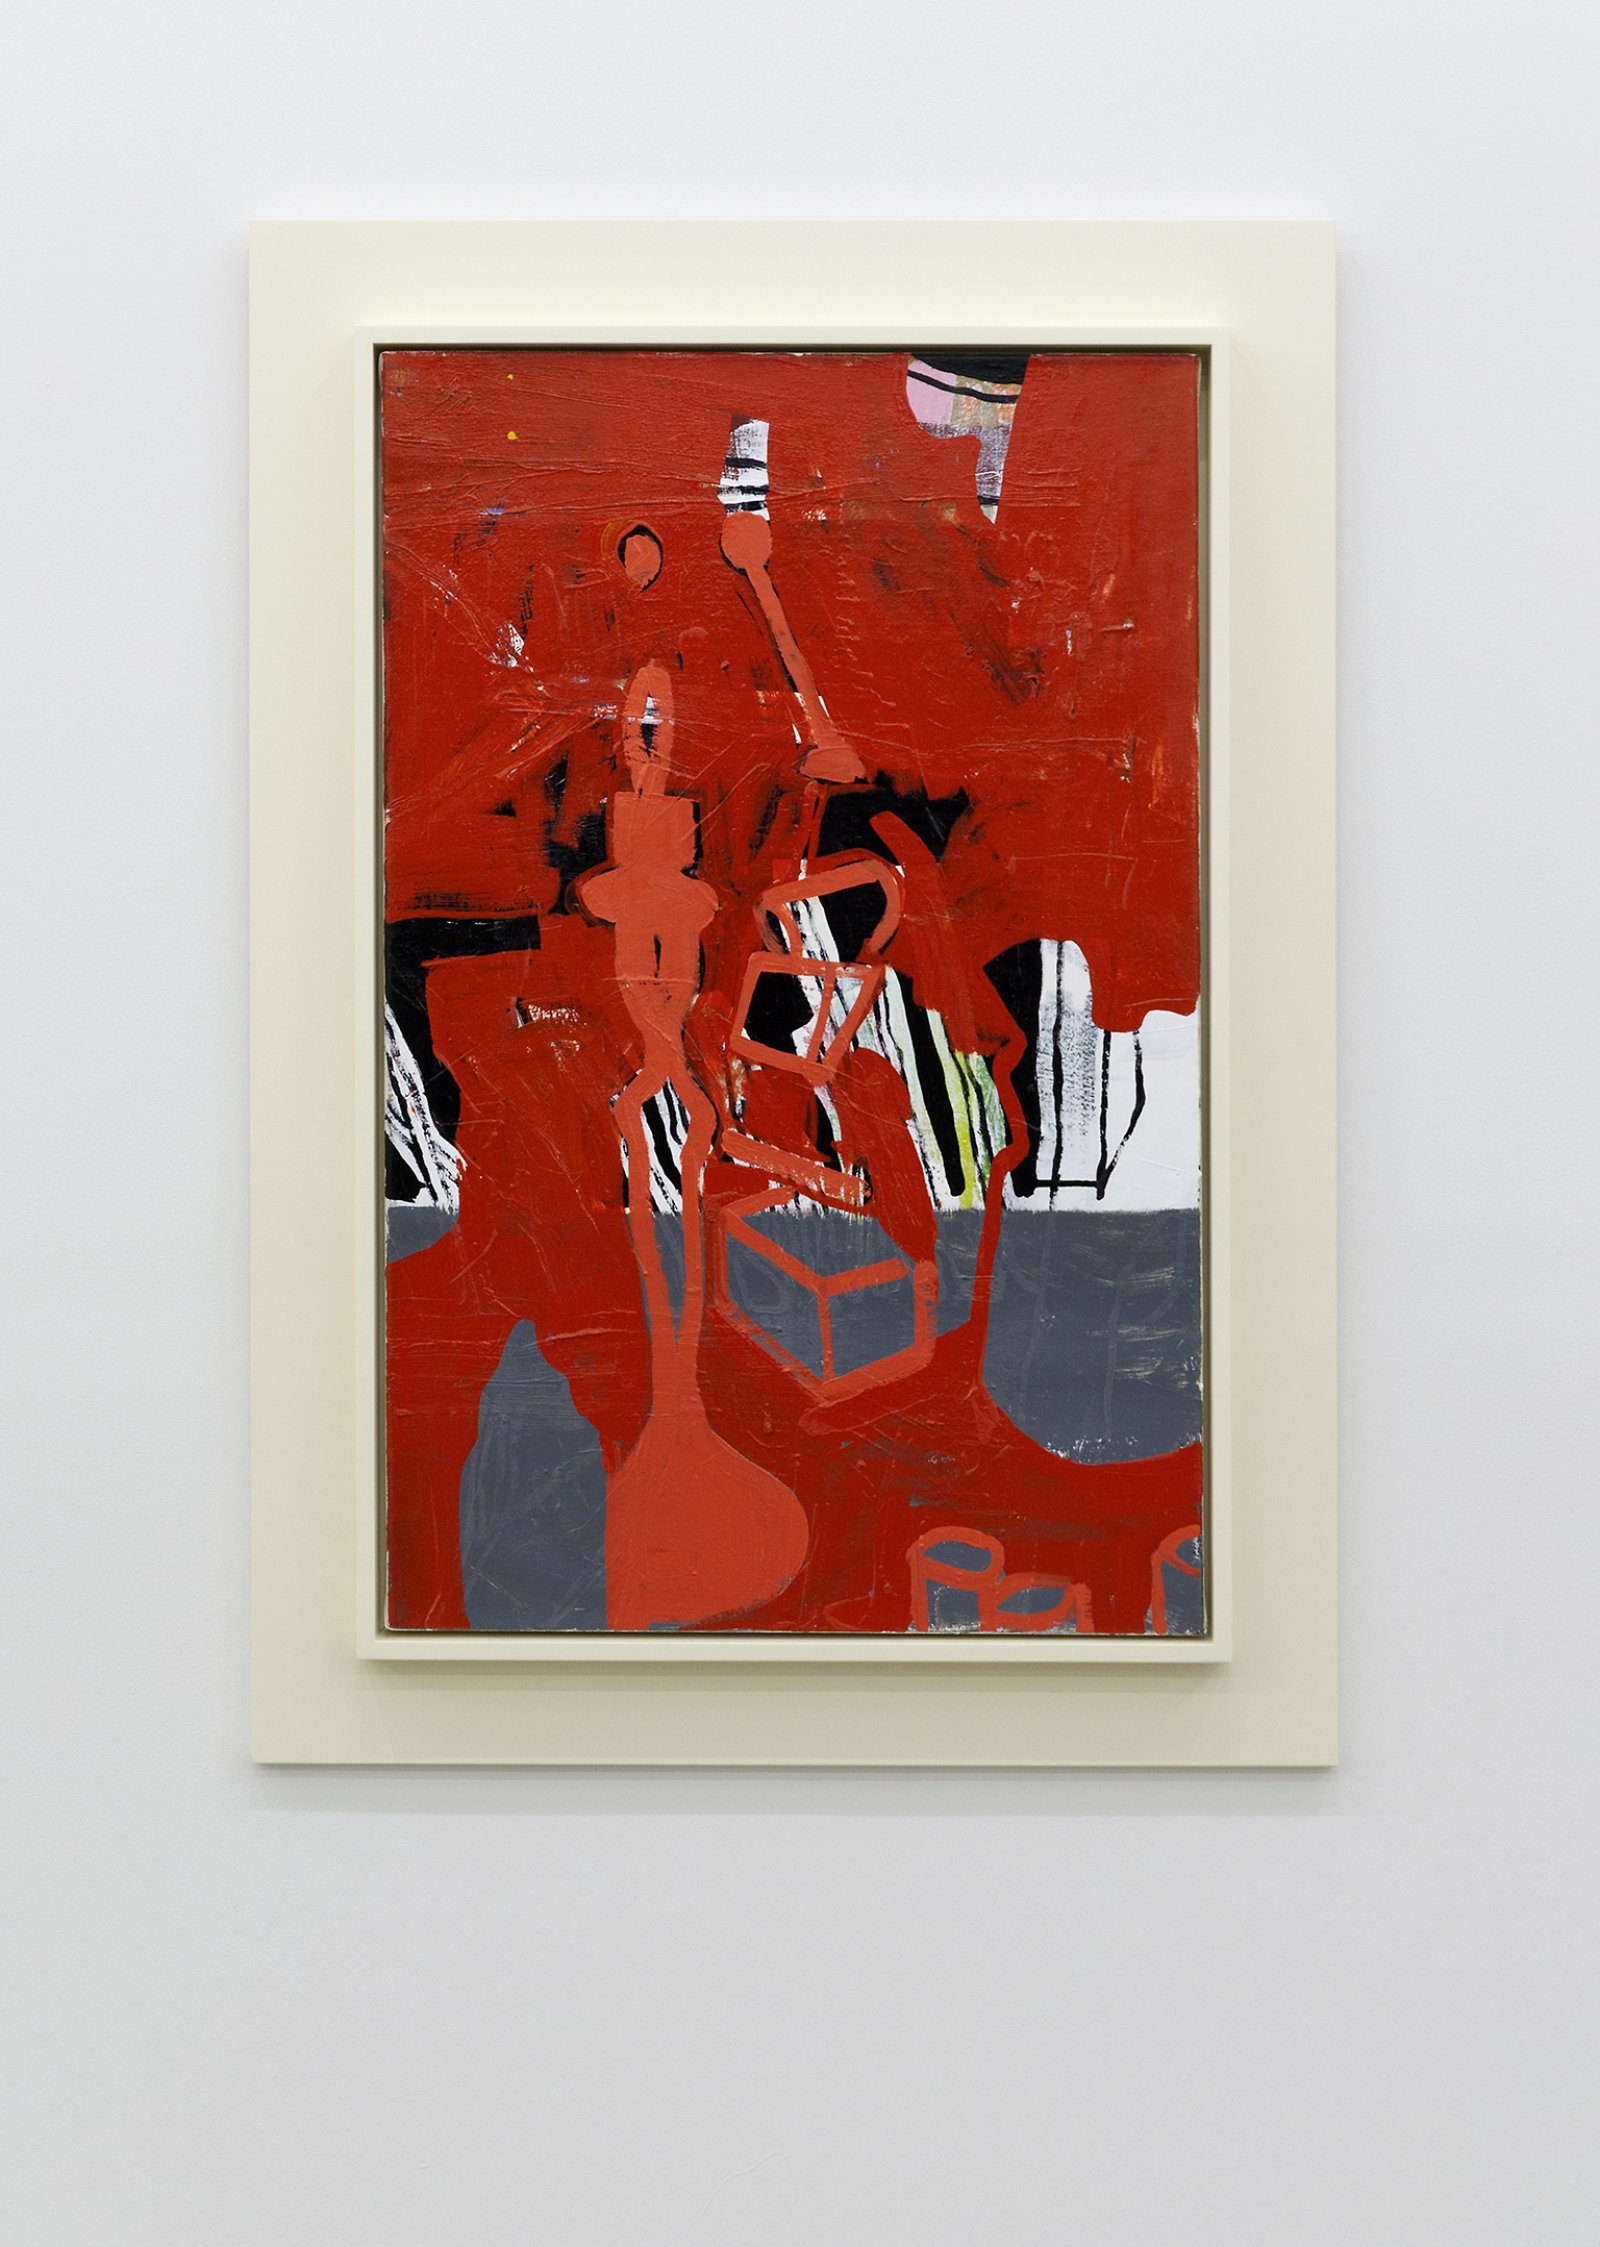 Damian Moppett, Red Candle, 2010, oil and enamel on linen and wood frame, 42 x 30 in. (105 x 76 cm)​​ by Damian Moppett